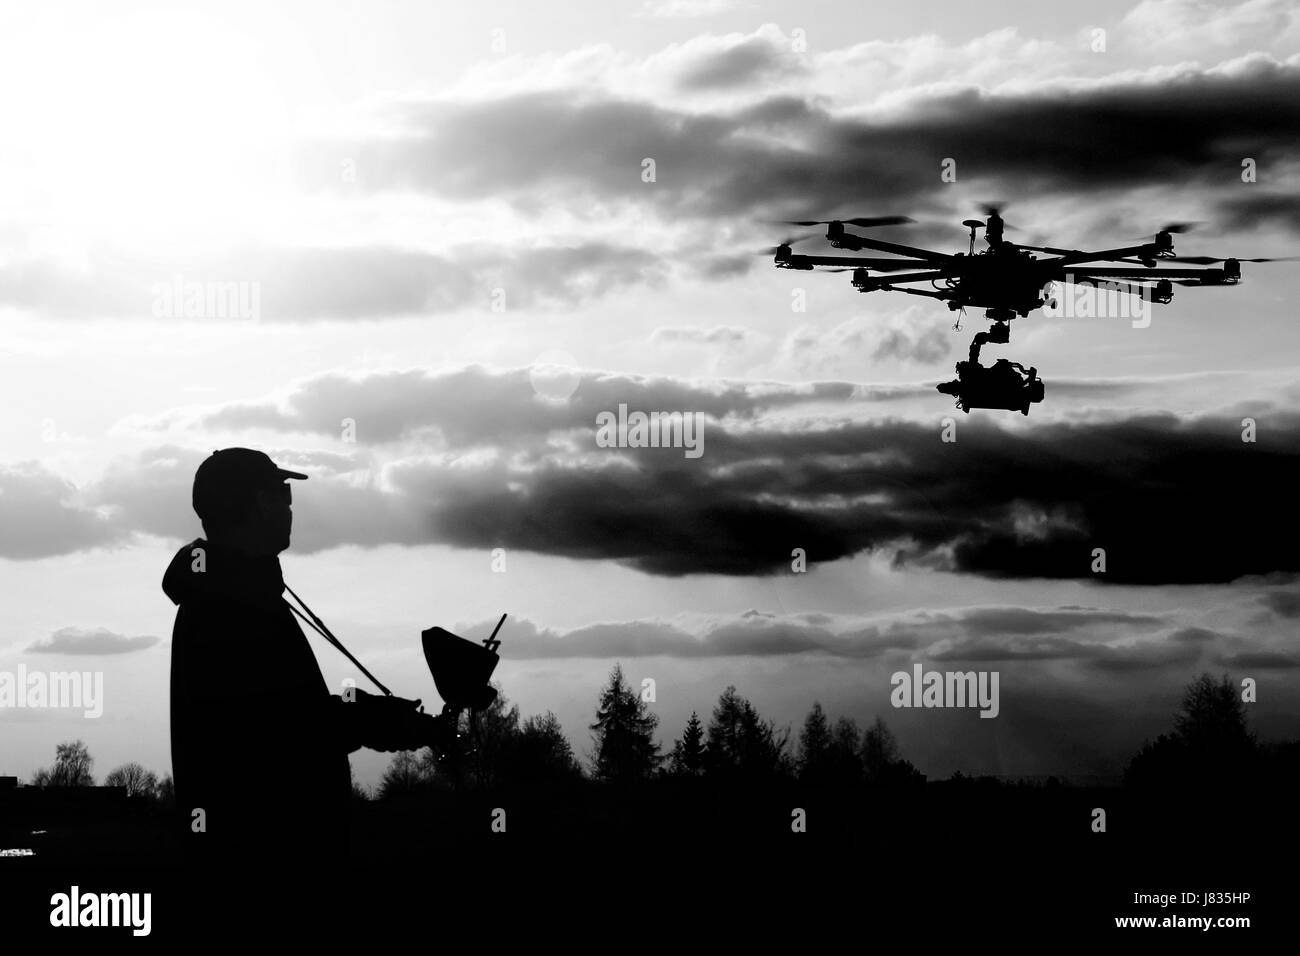 Drone, Unmanned copter flight, pilot flying drone - Stock Image